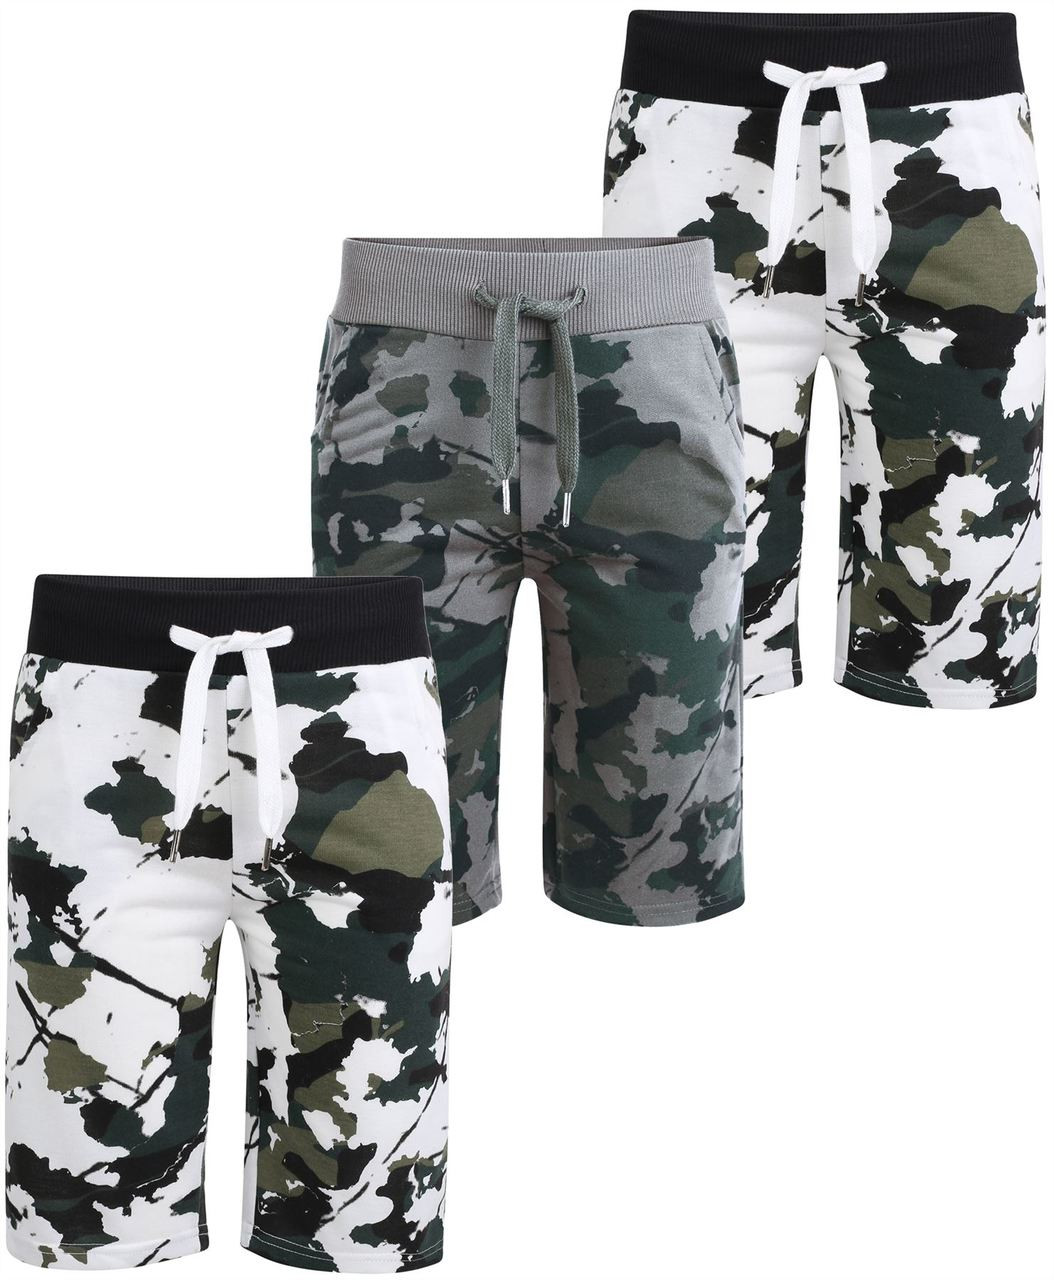 563763fbdd LotMart Kids Jersey Camo Shorts Bundle with Multipocket Camo Shorts Pack of  2 Colours Sports & Outdoors Athleisure